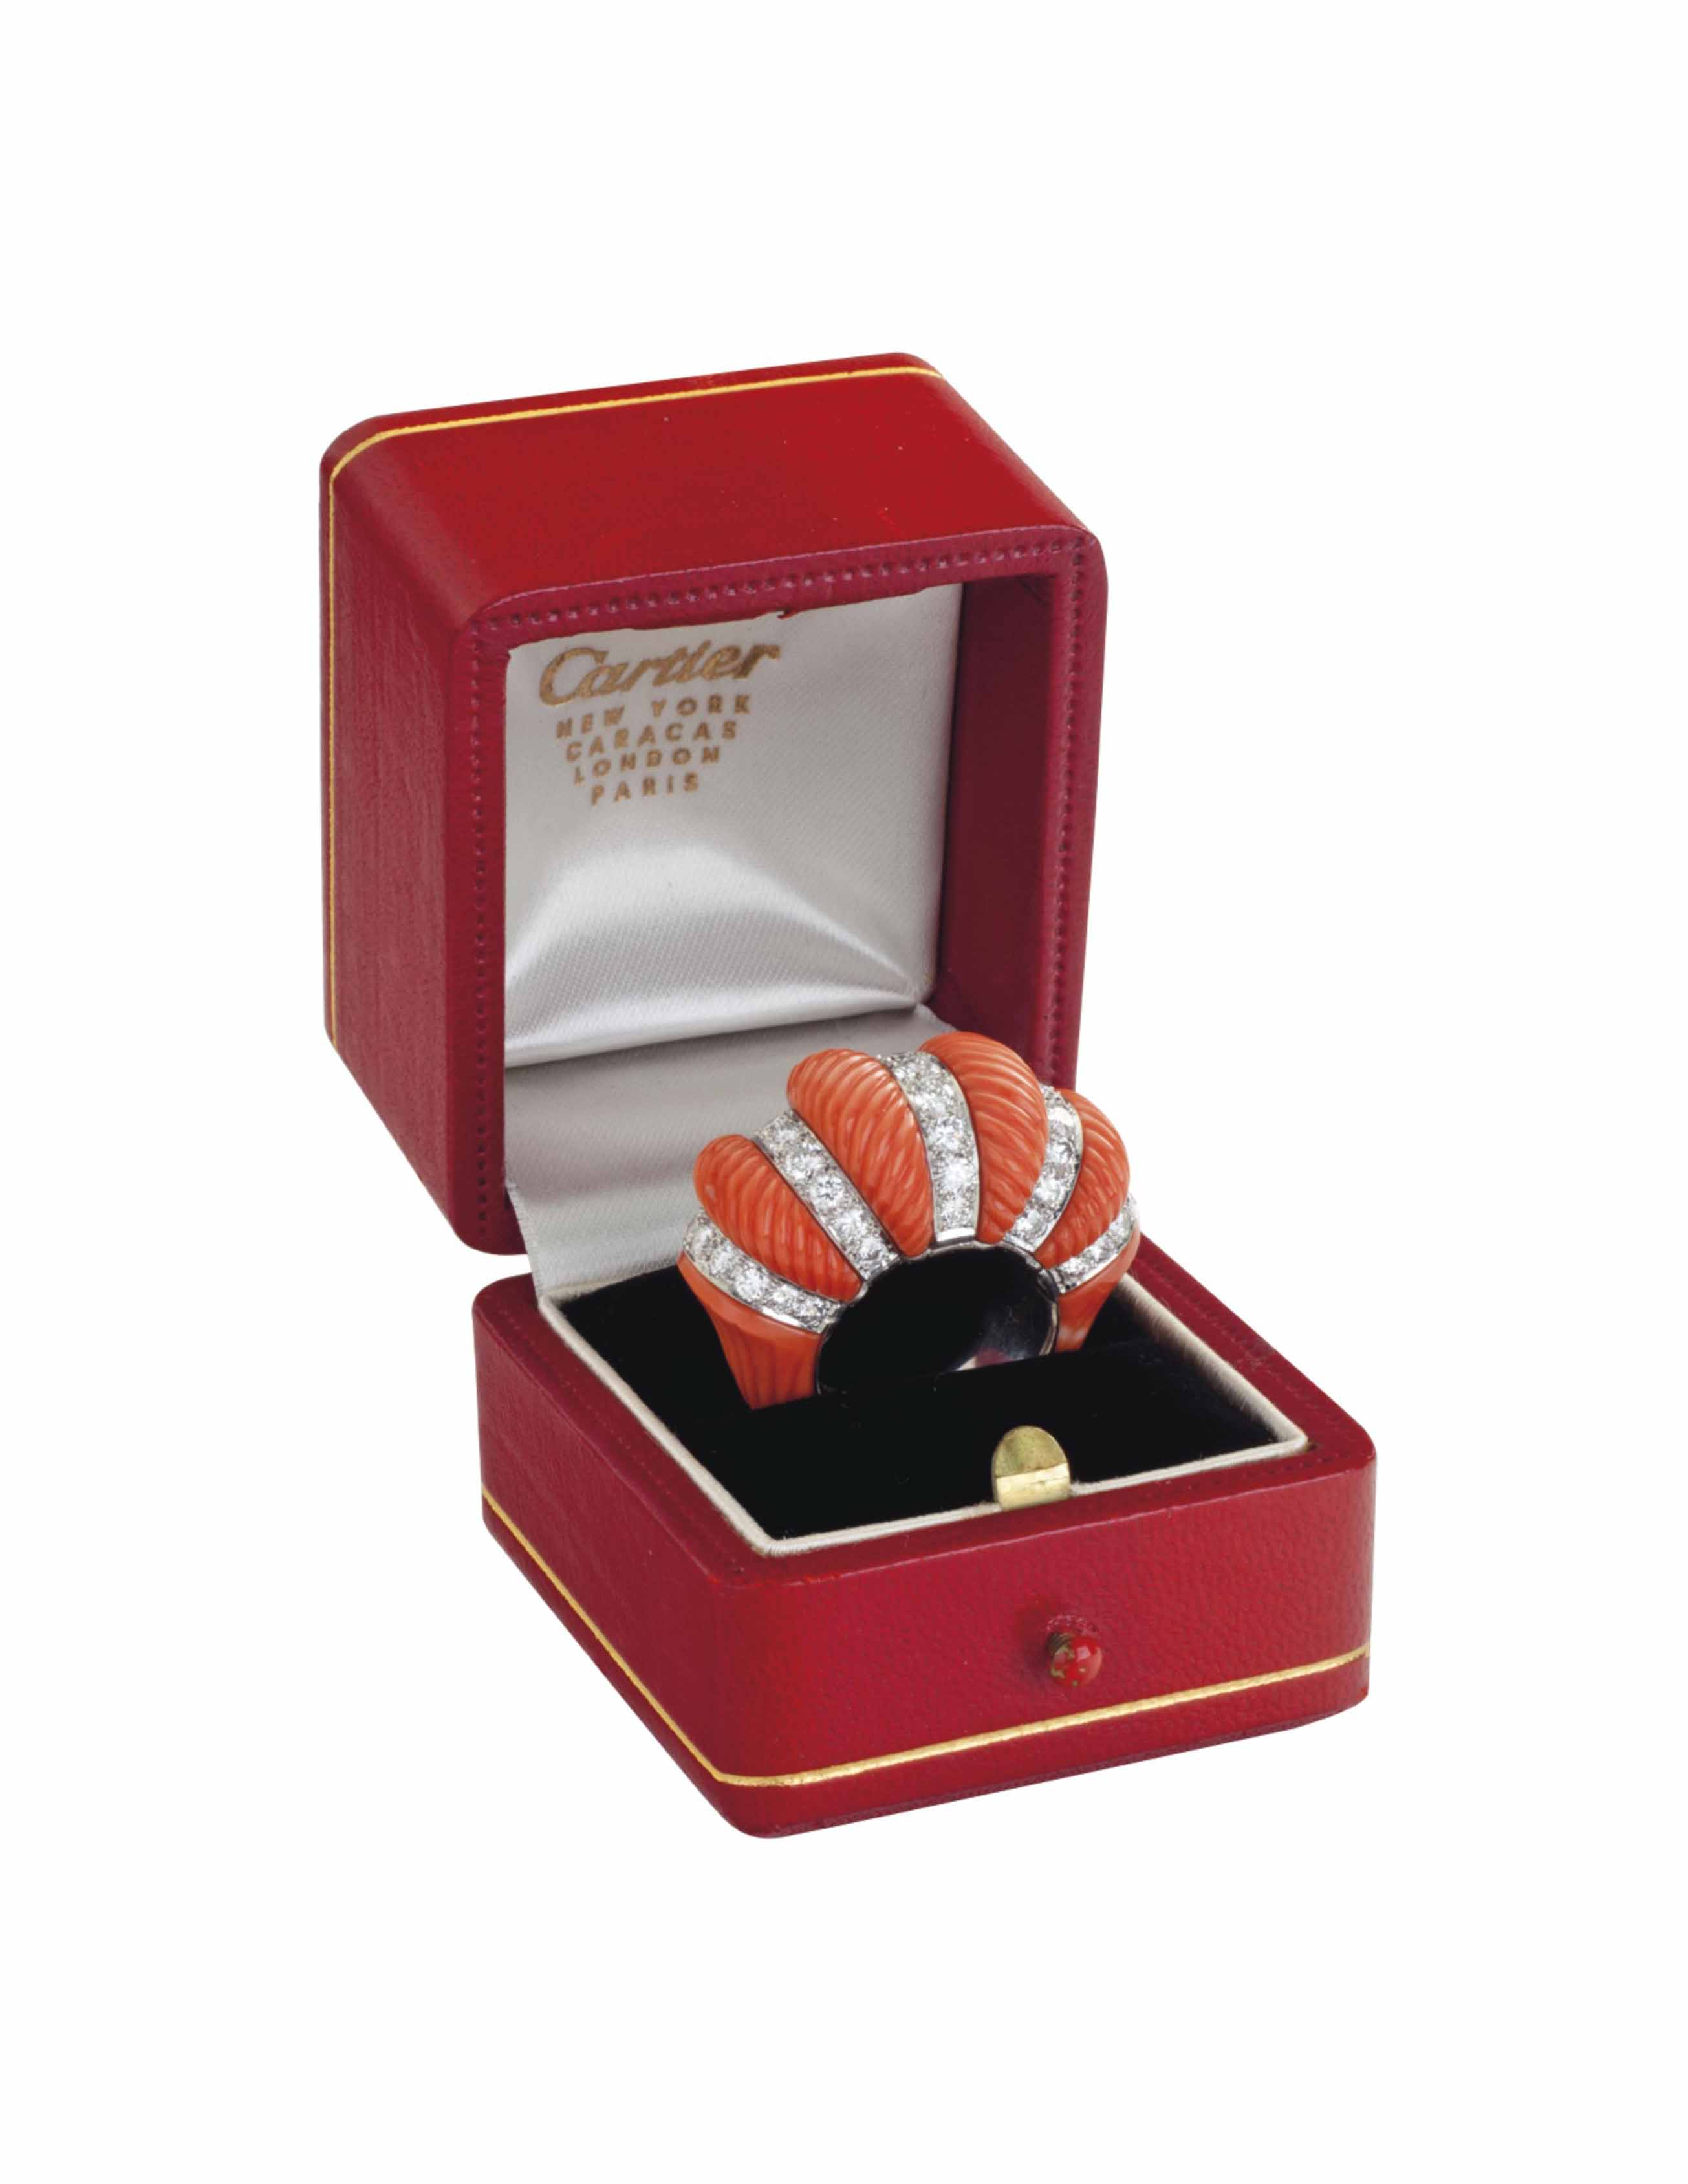 ~A CORAL AND DIAMOND RING, BY